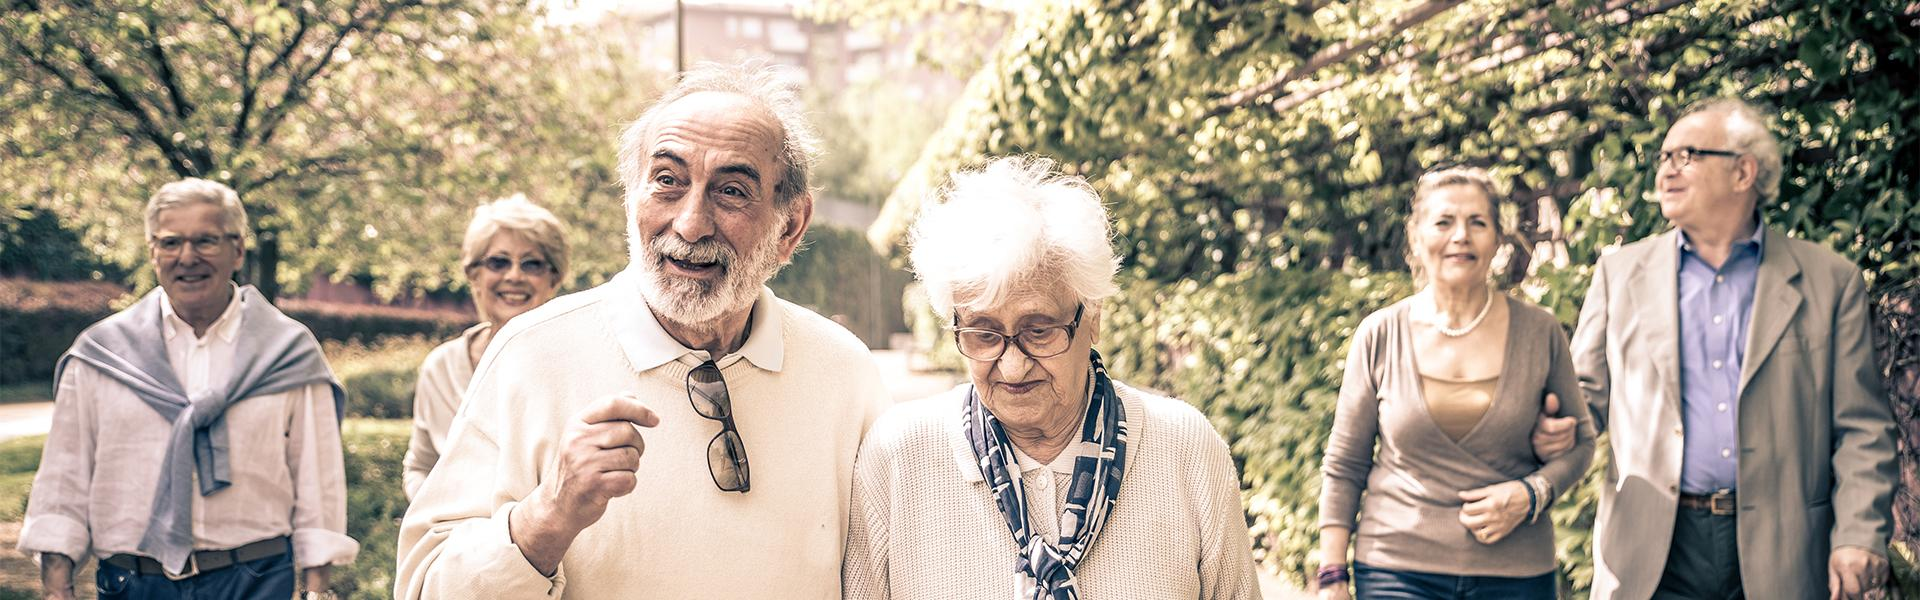 Content pensioners enjoying a stroll